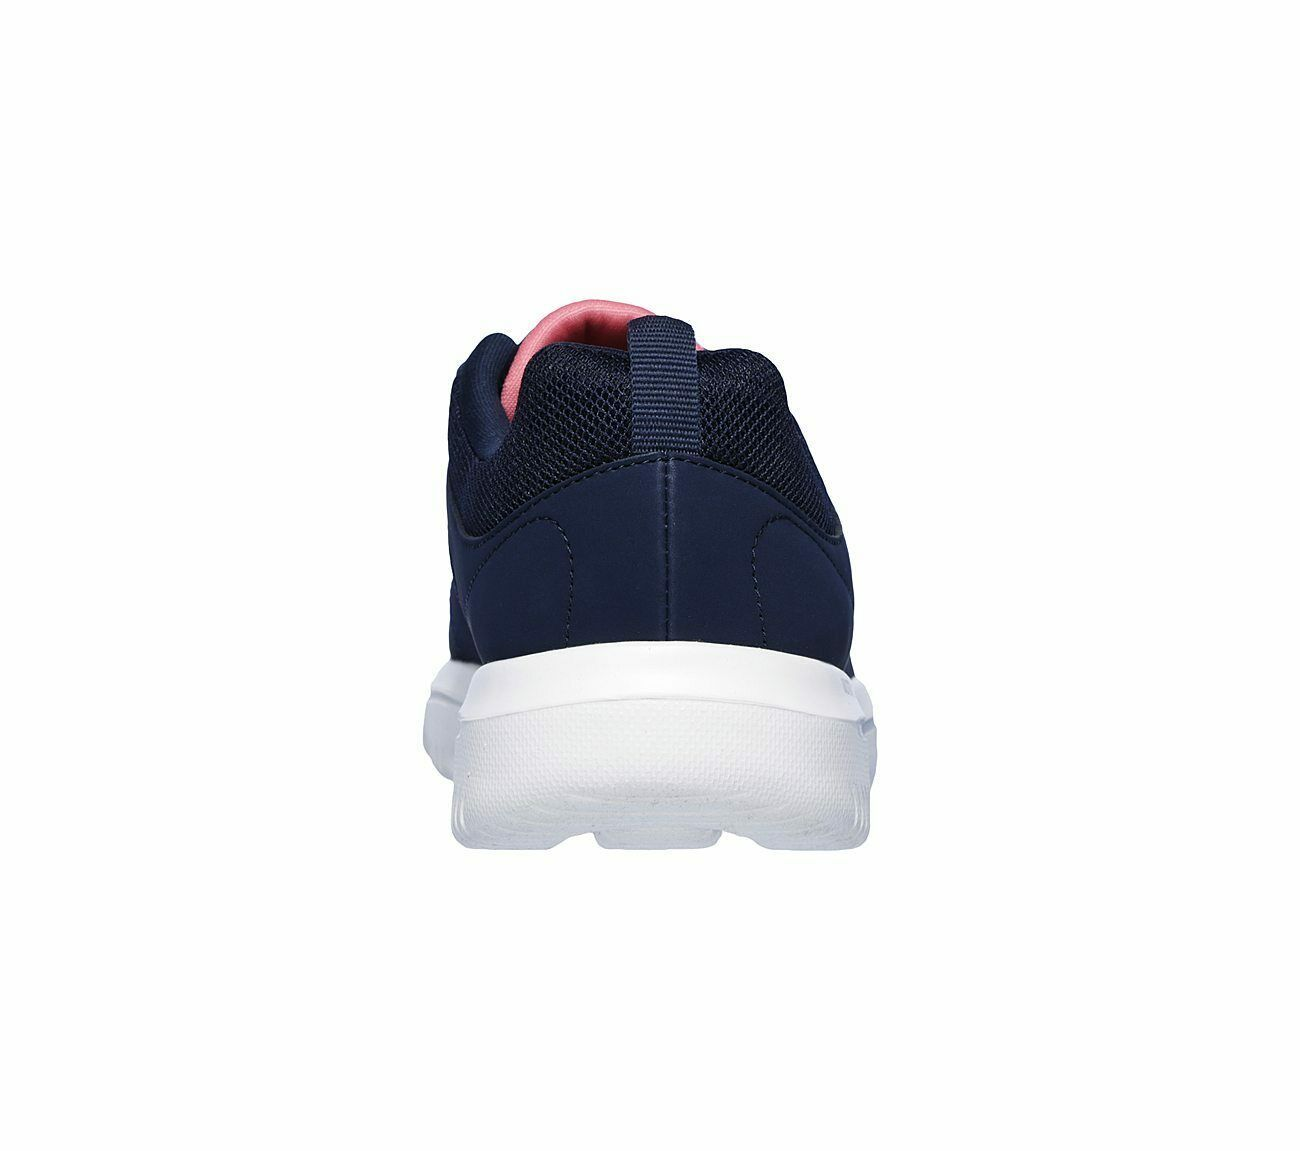 Skechers Navy Coral shoes Women Go Walk Comfort Mesh Casual Sporty Lace Up 15734 image 6